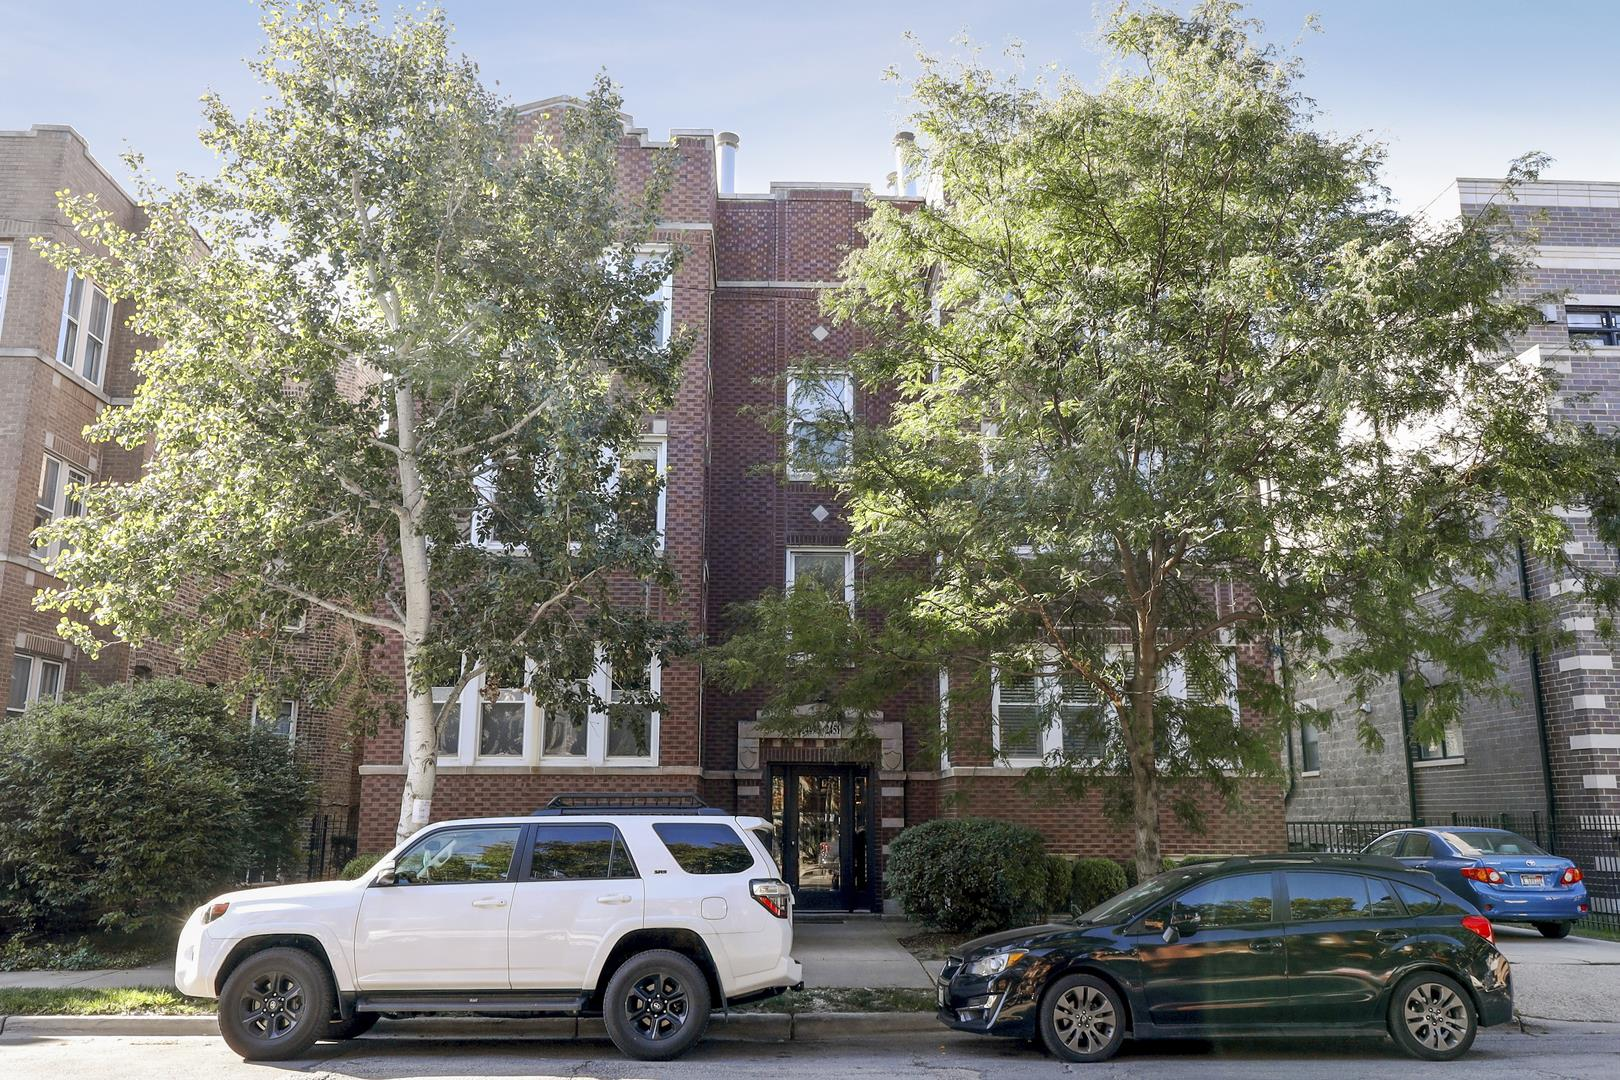 2449 W FOSTER Avenue #2, Chicago, IL 60625 - #: 10878047